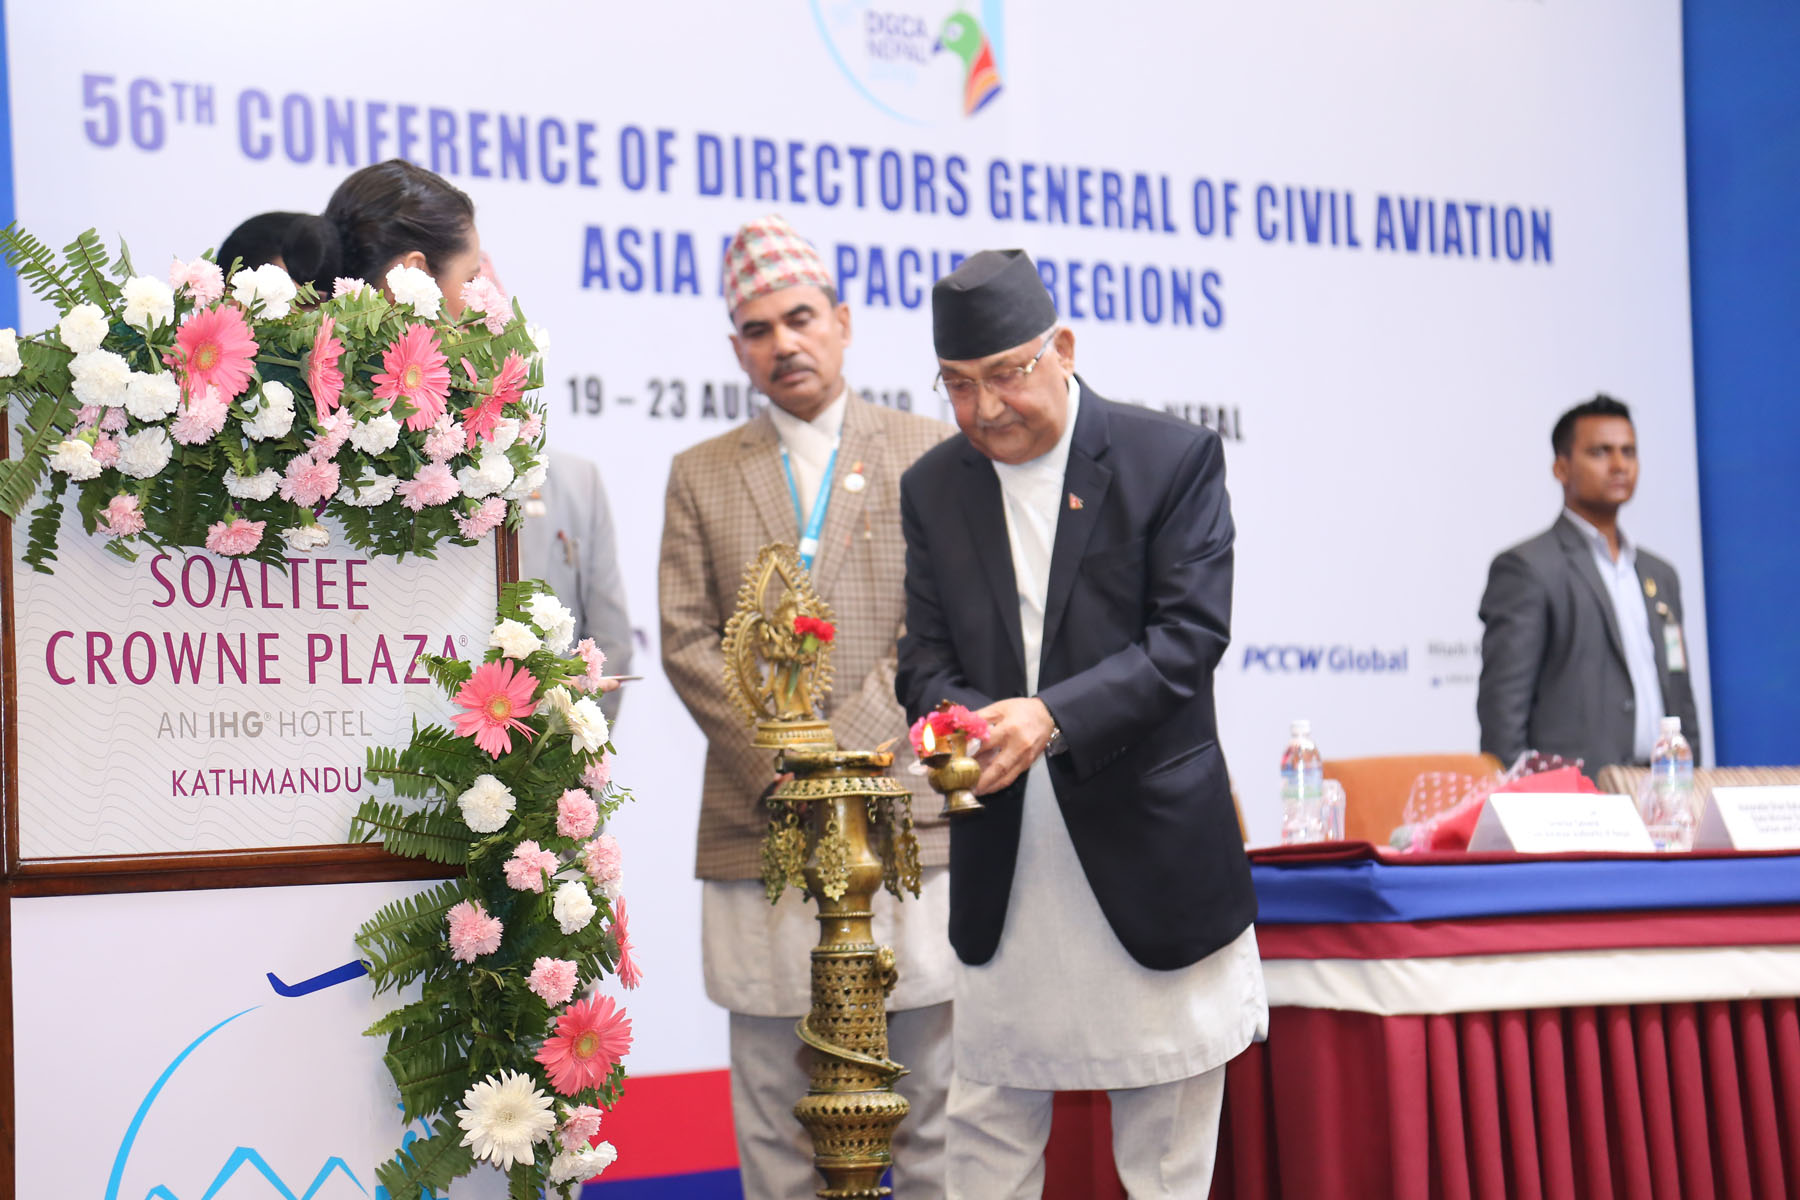 56th DGCA Conference Inaugurated by Rt. Hon'ble PM